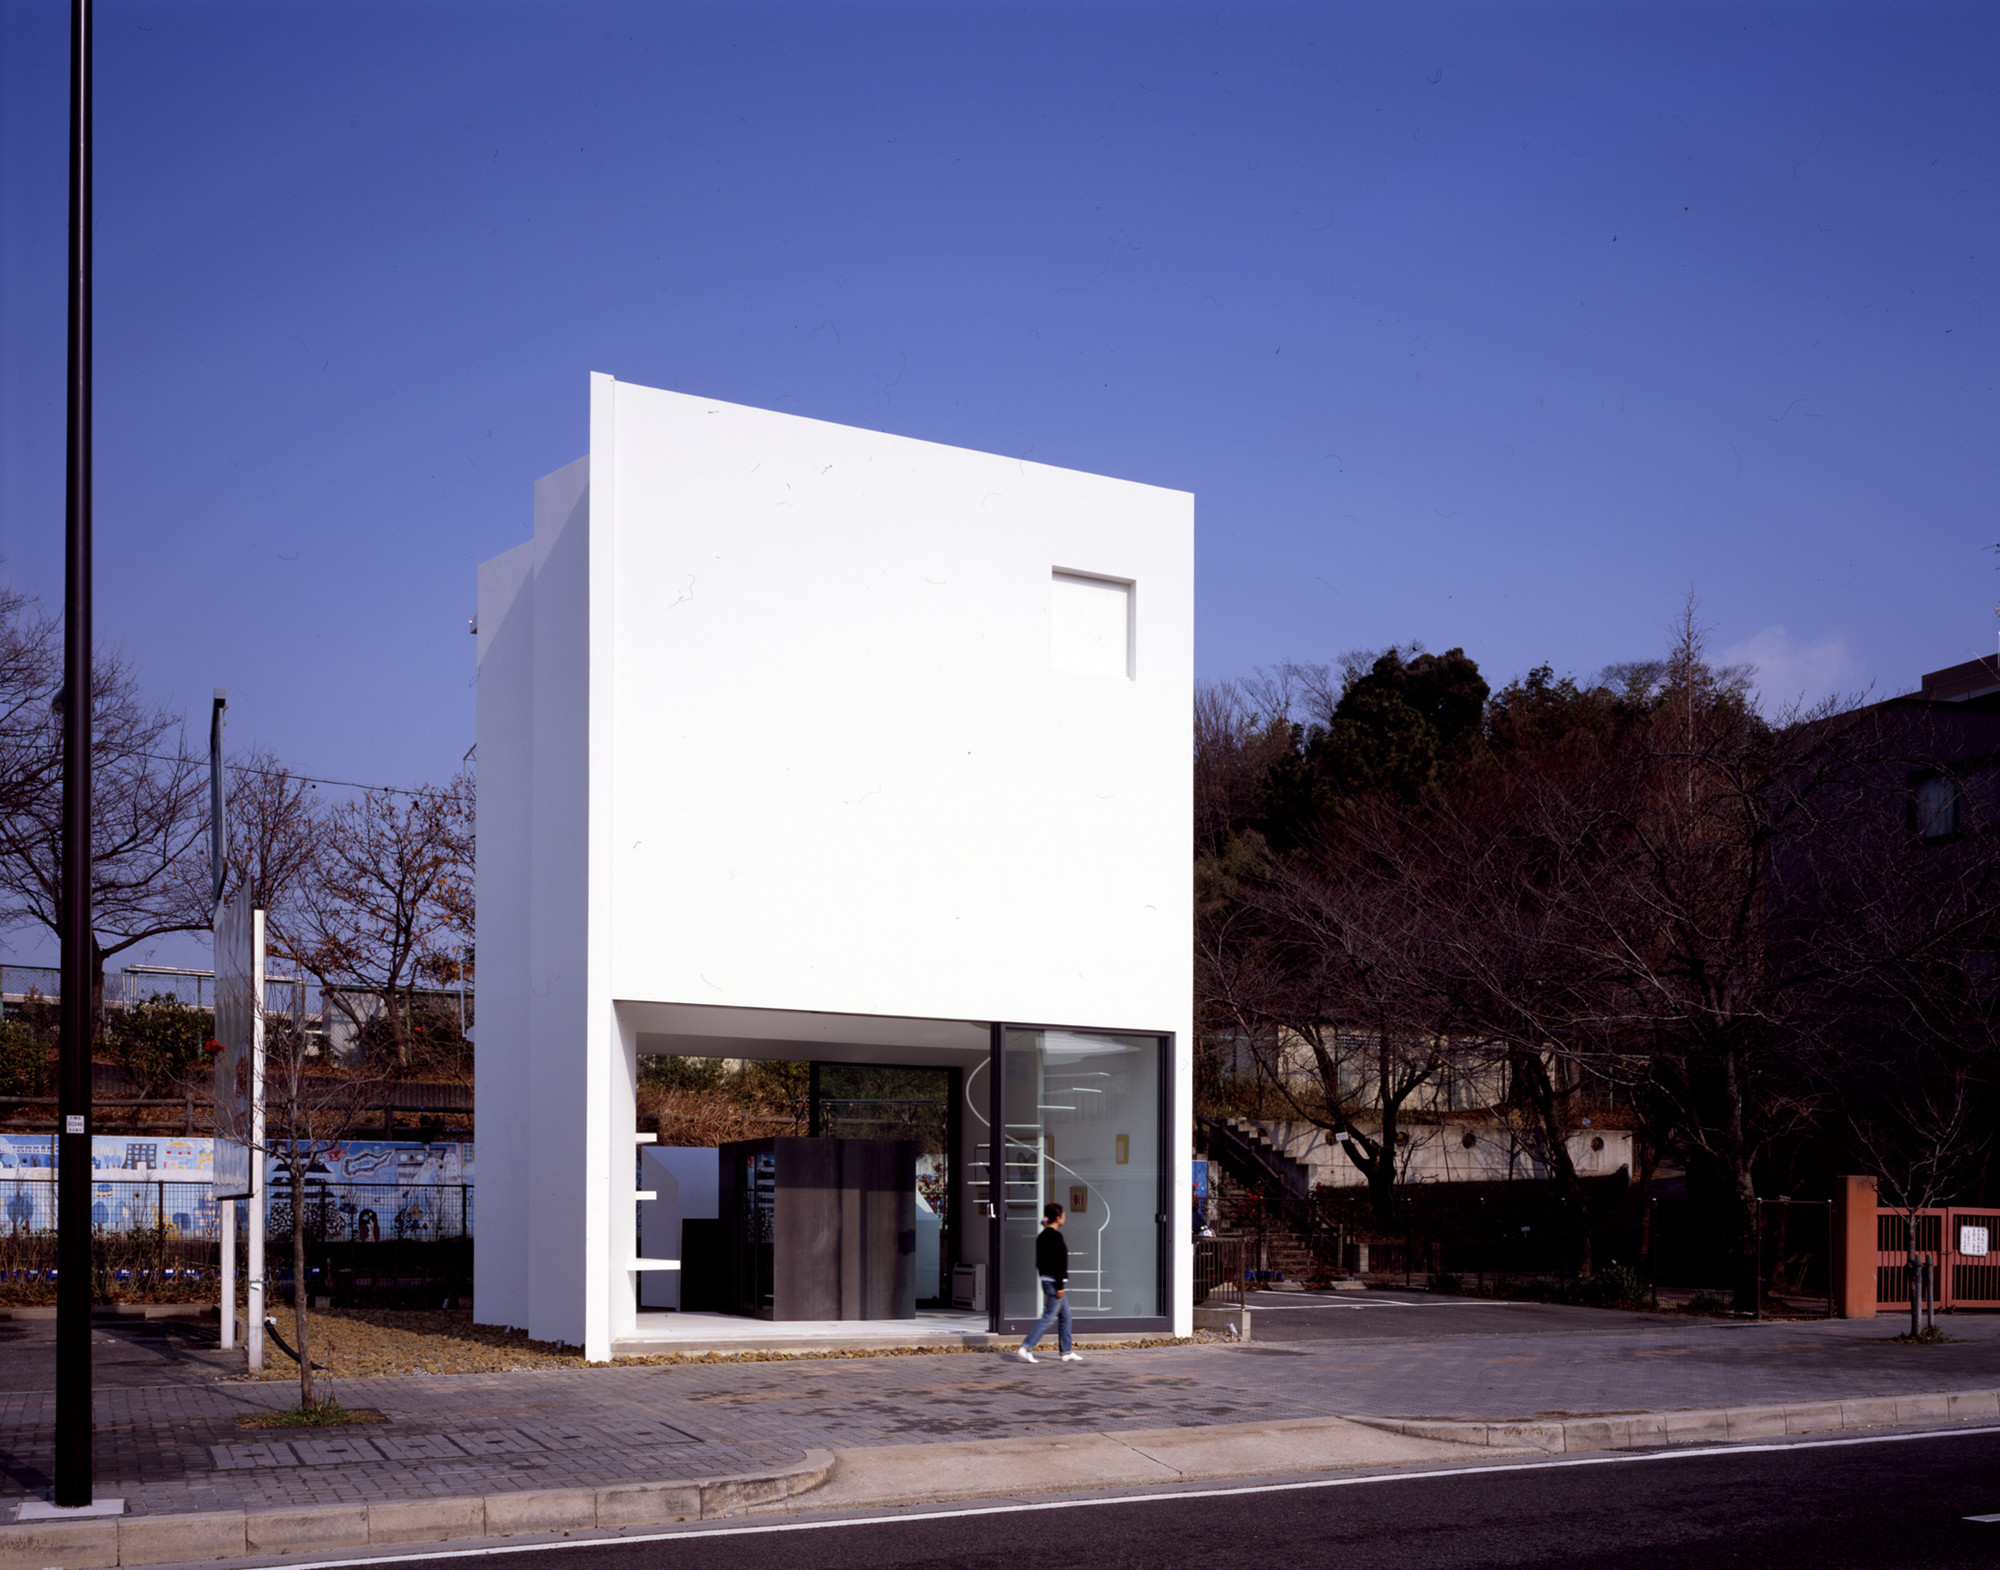 House in Nagoya 01 / Suppose Design Office